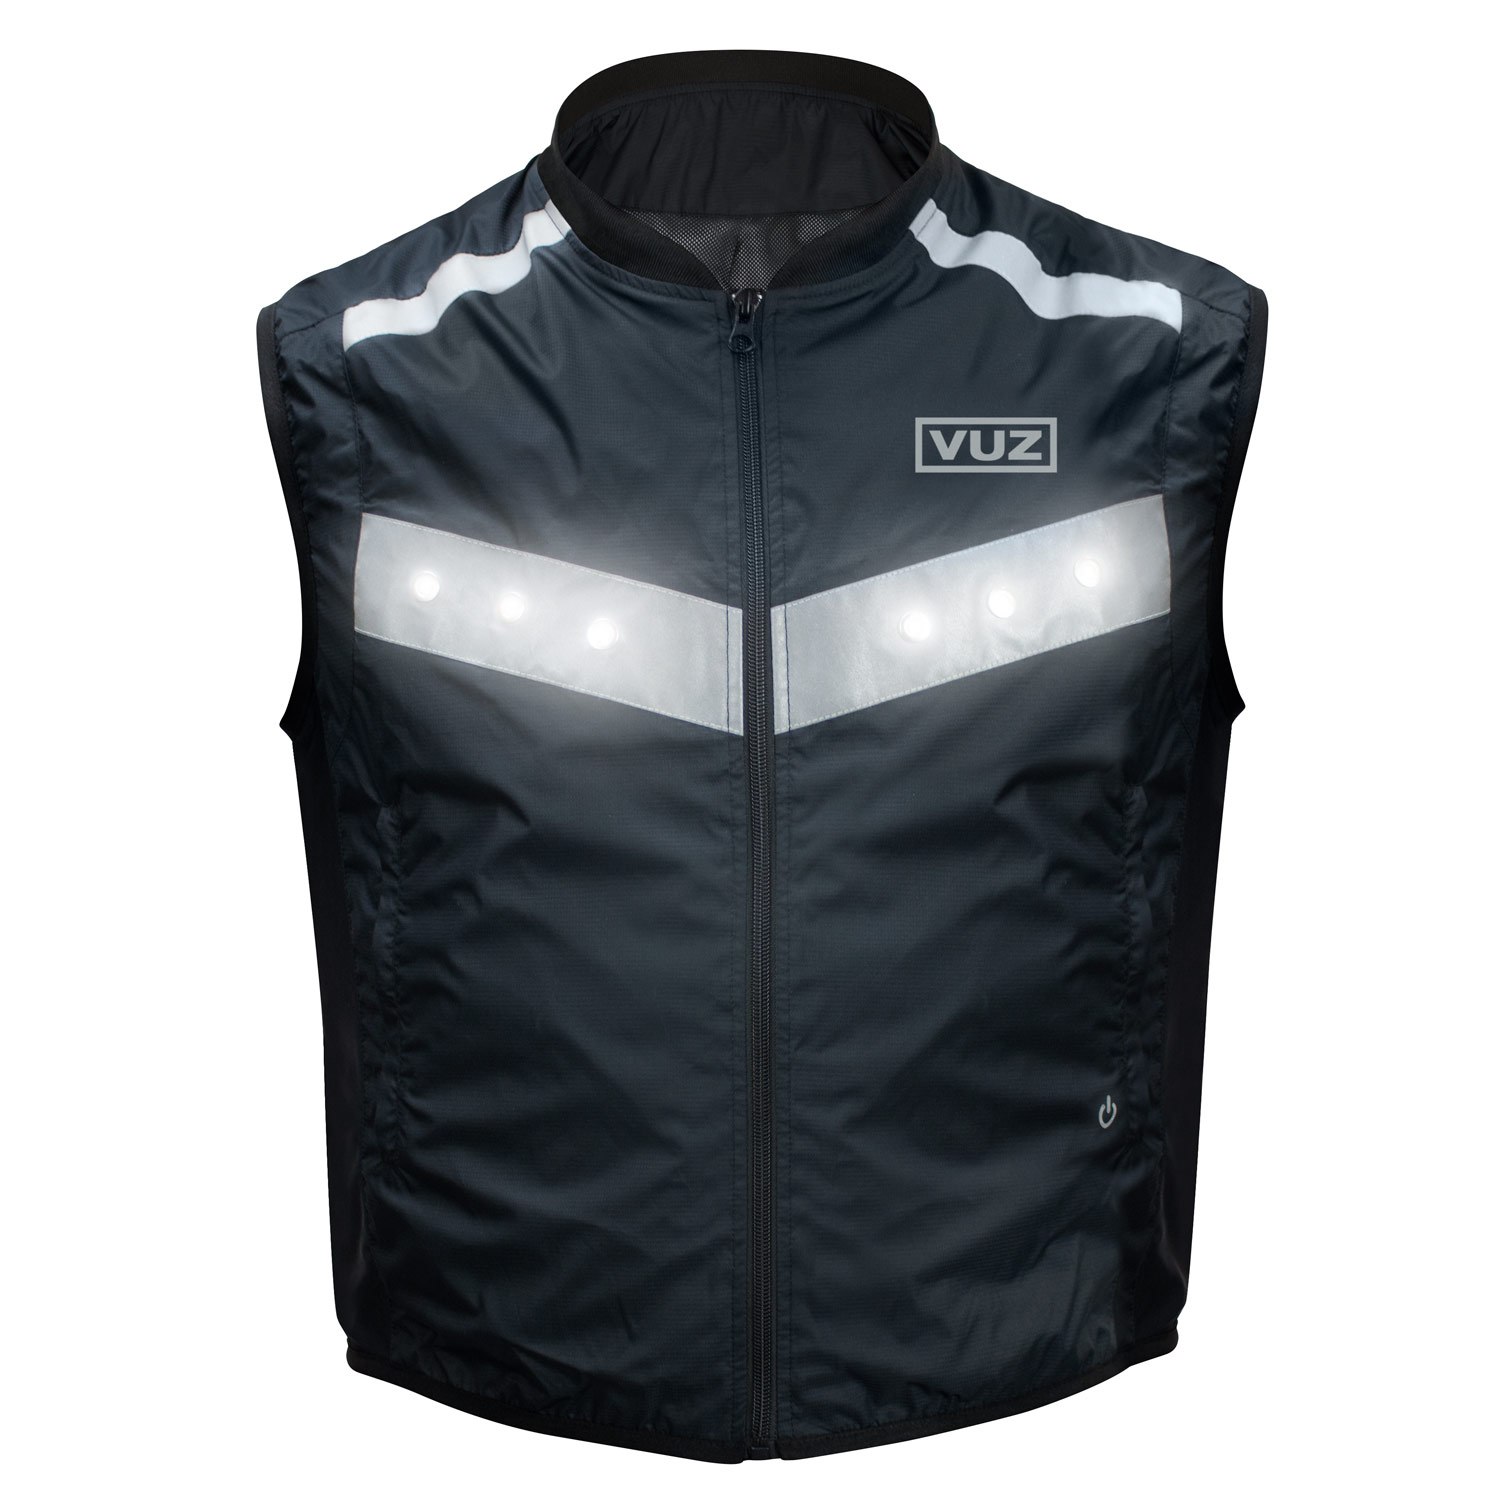 VUZ Moto LED Safety Vest | Reflective Motorcycle Vest | Rechargeable 8hr Battery | Waterproof | LARGE